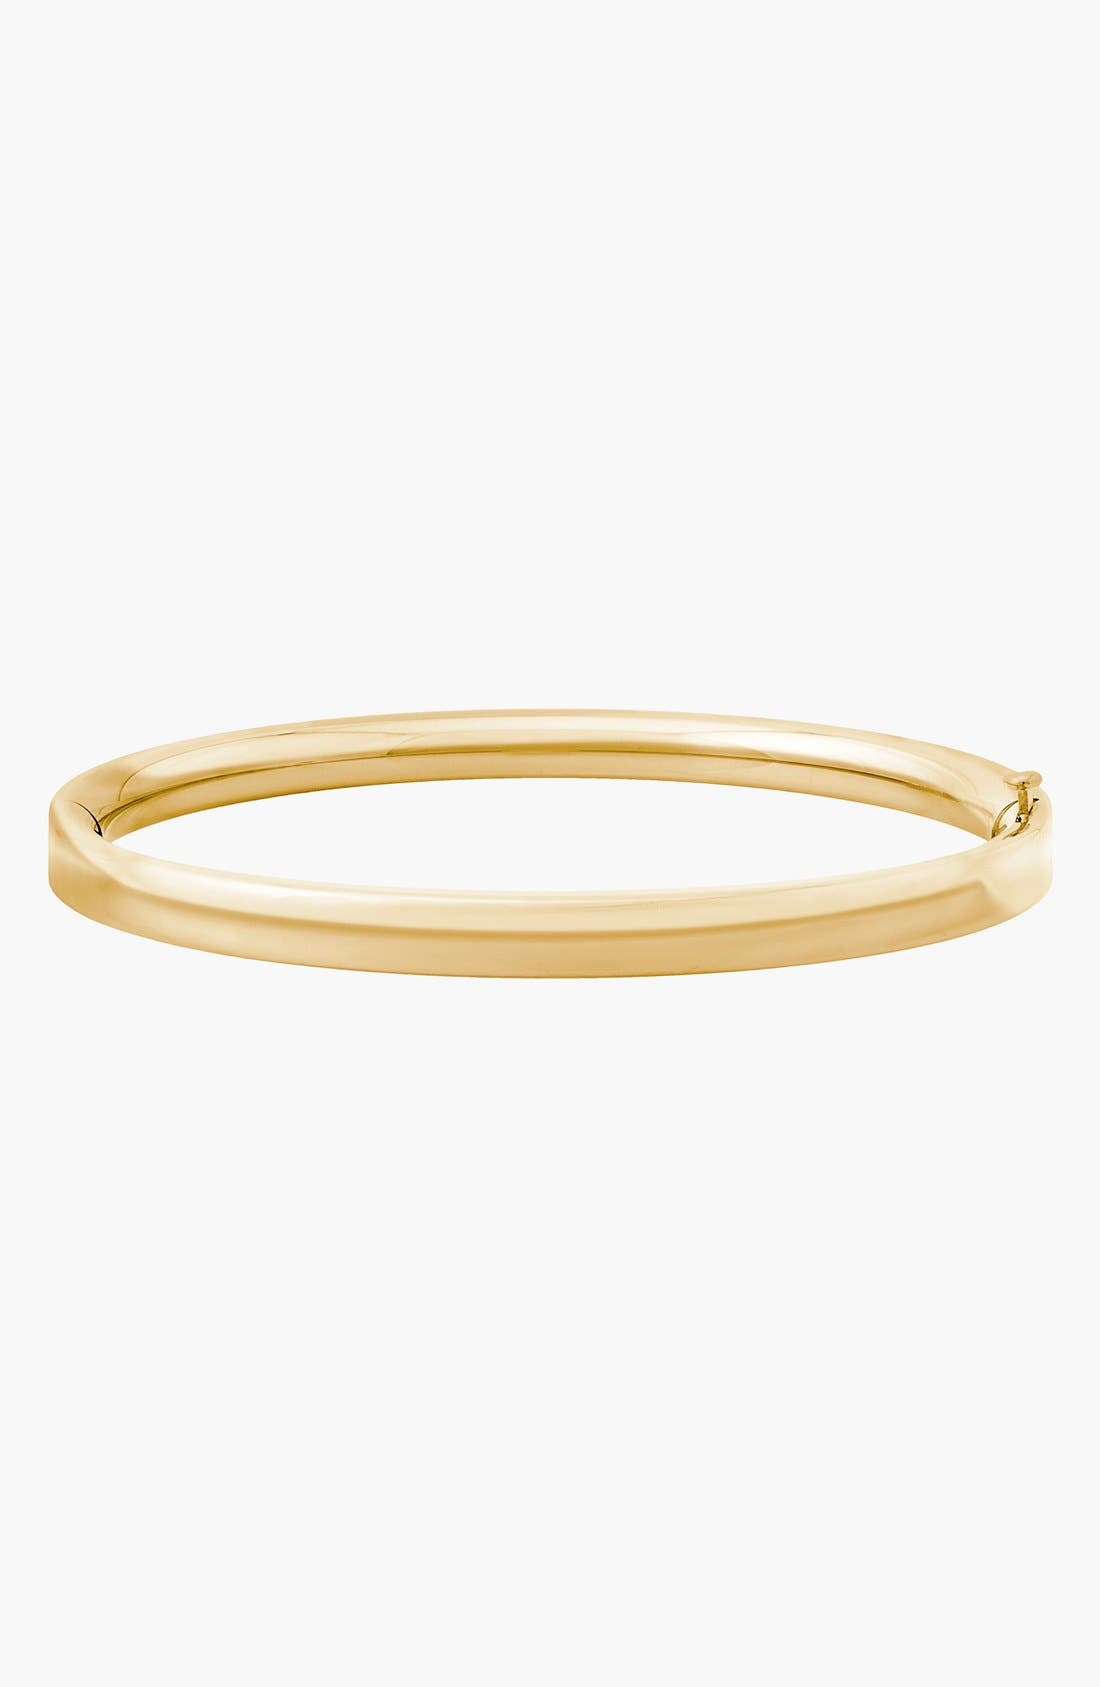 Infant Girls Mignonette 14K Gold Bracelet